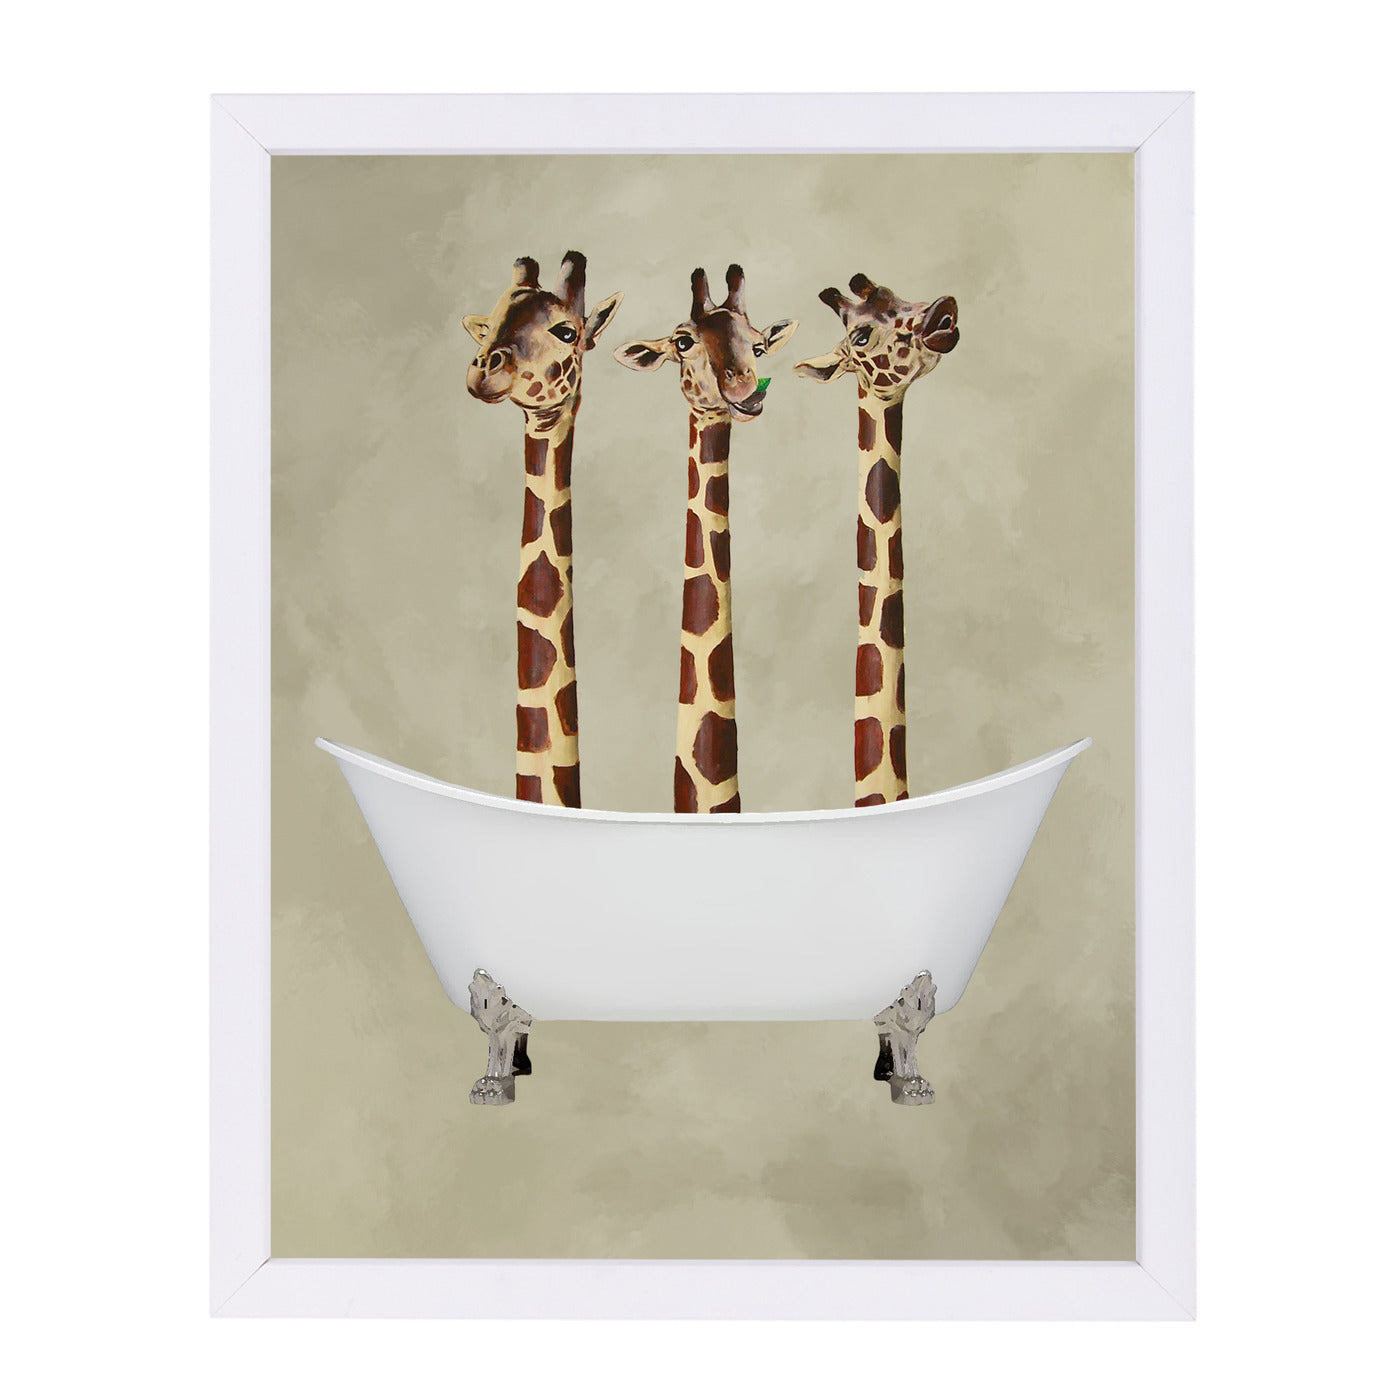 "Giraffes In Bathtub By Coco De Paris - White Framed Print, Wall Art, Coco de Paris, 8"" x 10"""